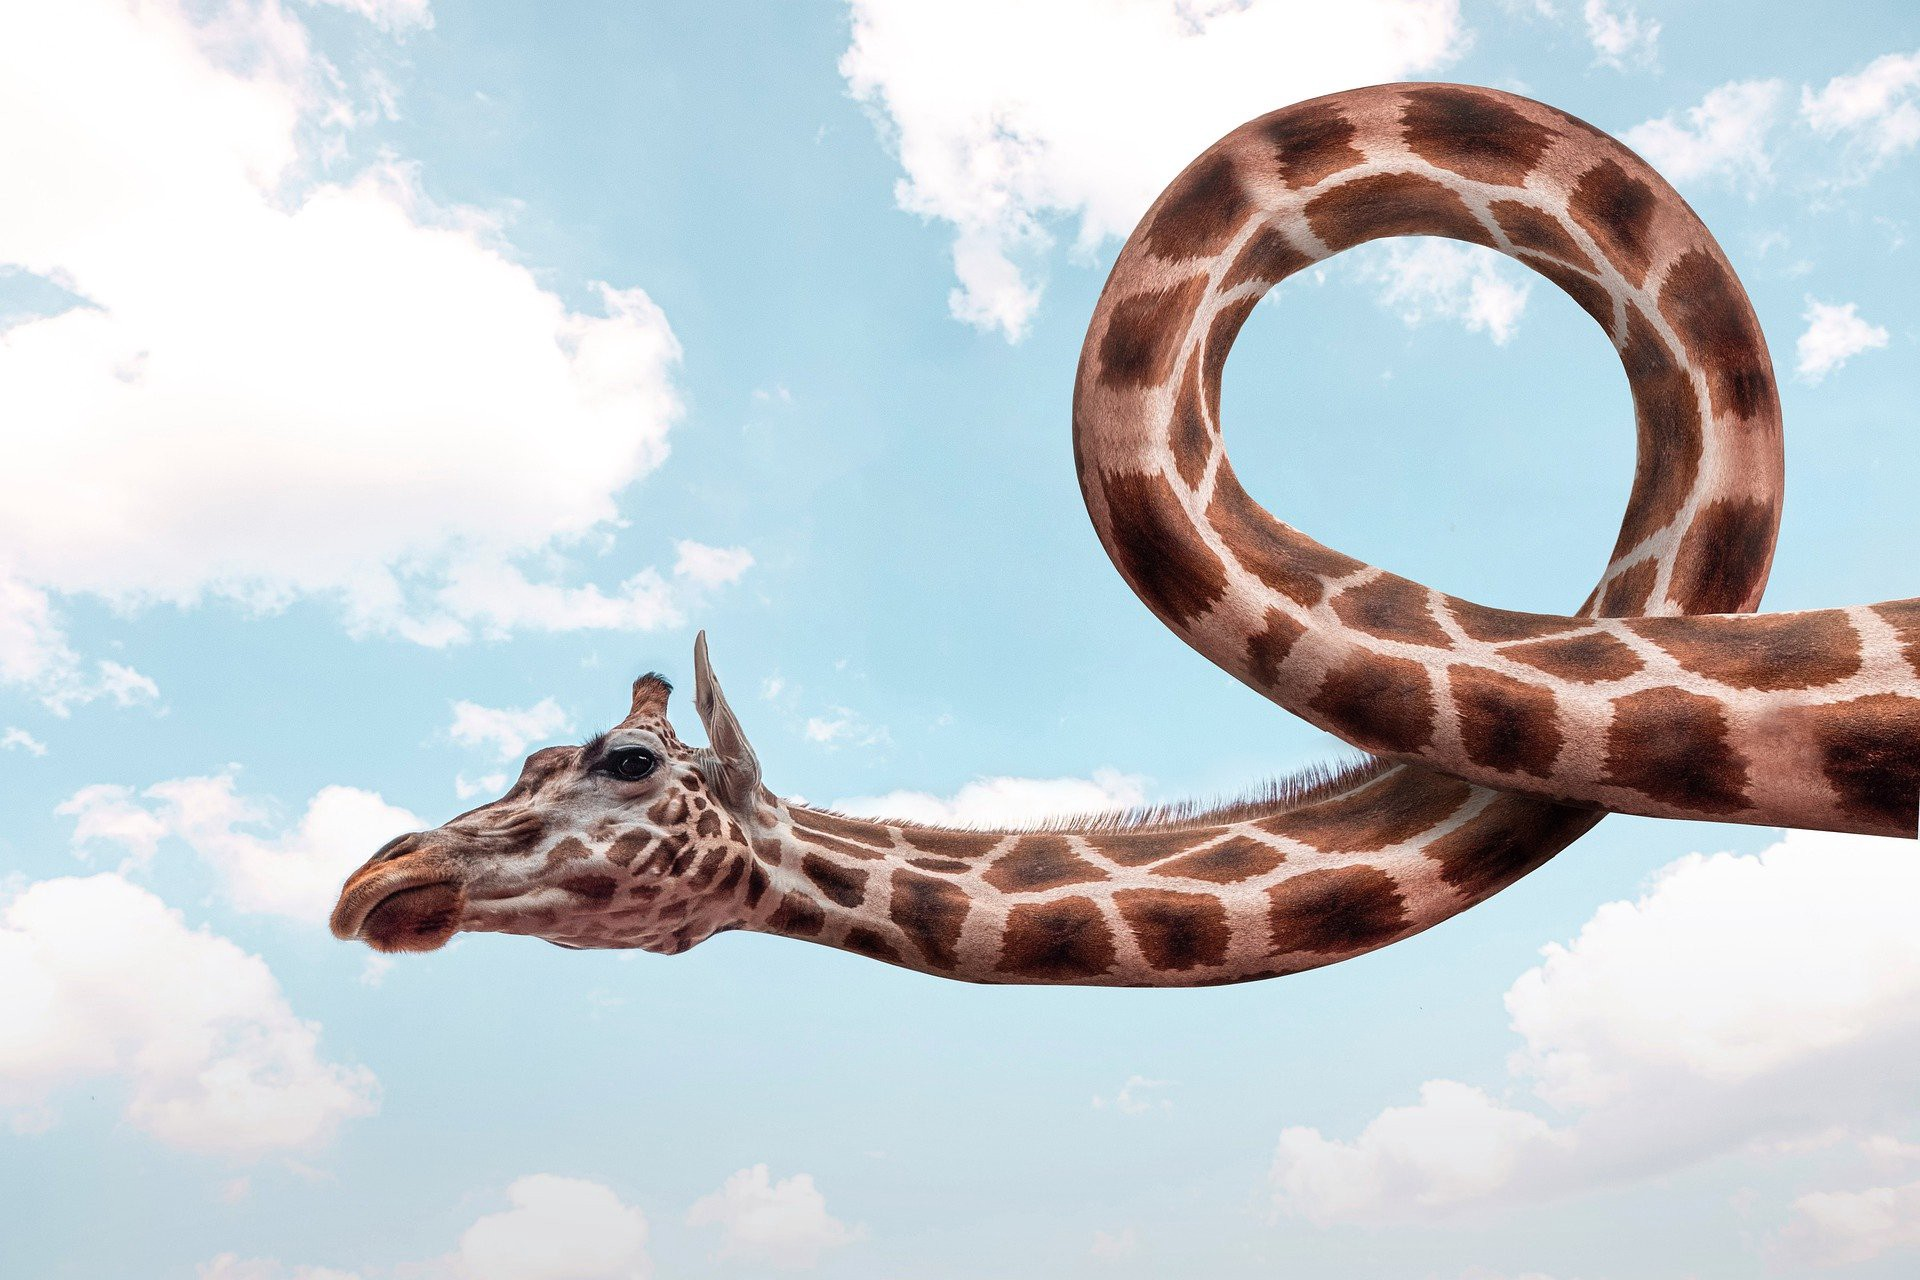 Giraffe with twisted neck